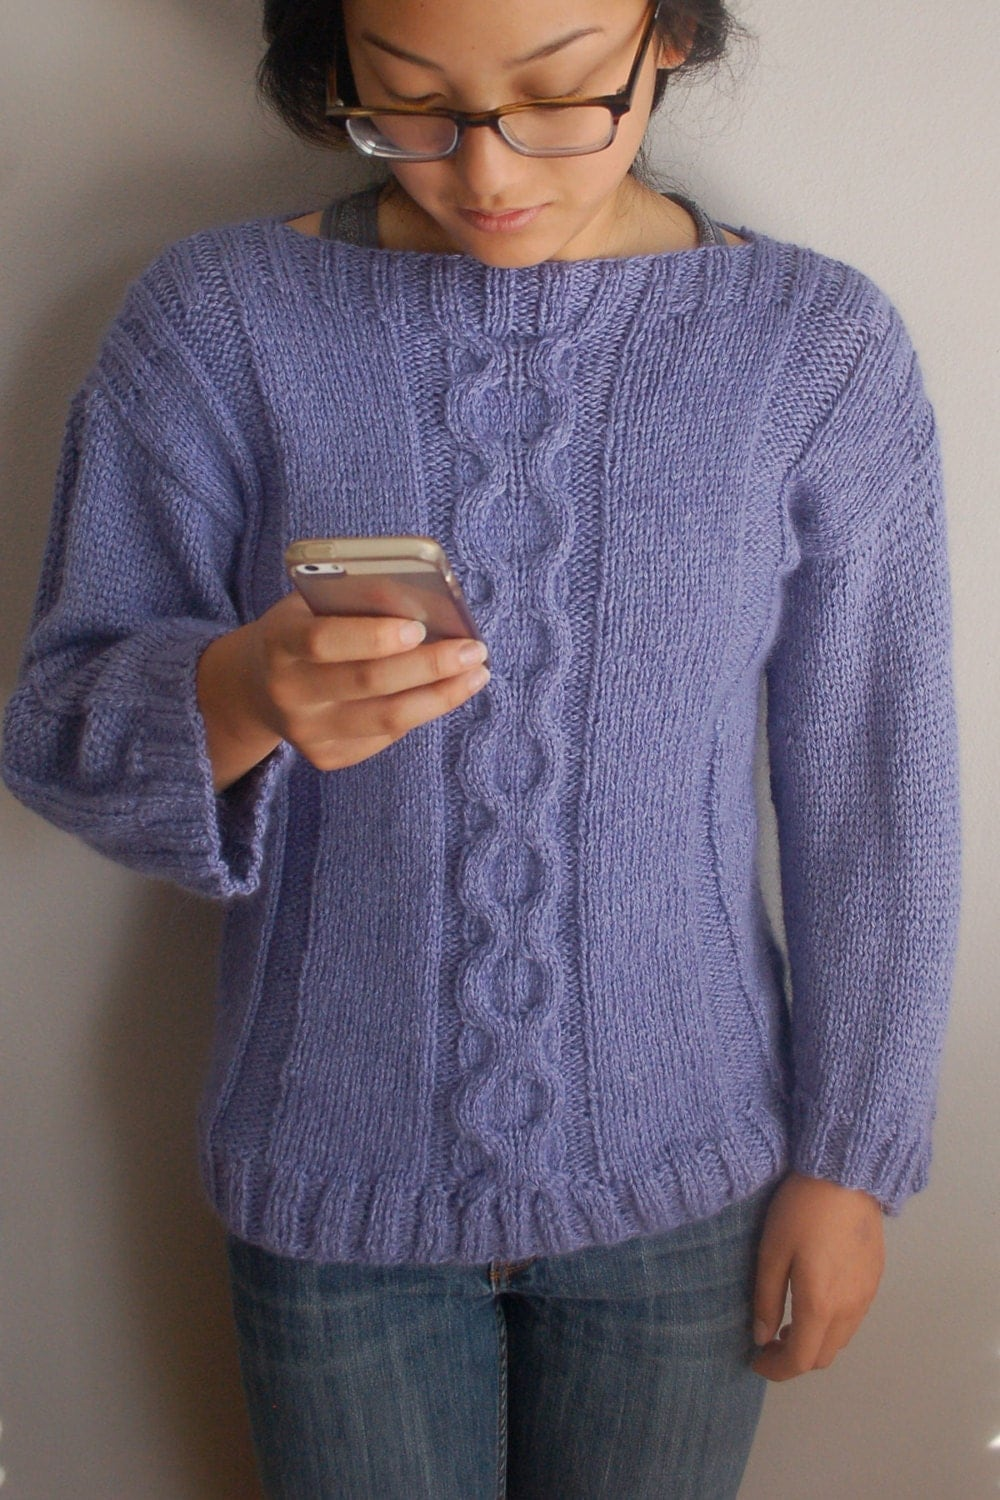 Knit A Sweater Easy : Cable sweater knitting pattern easy to knit pullover